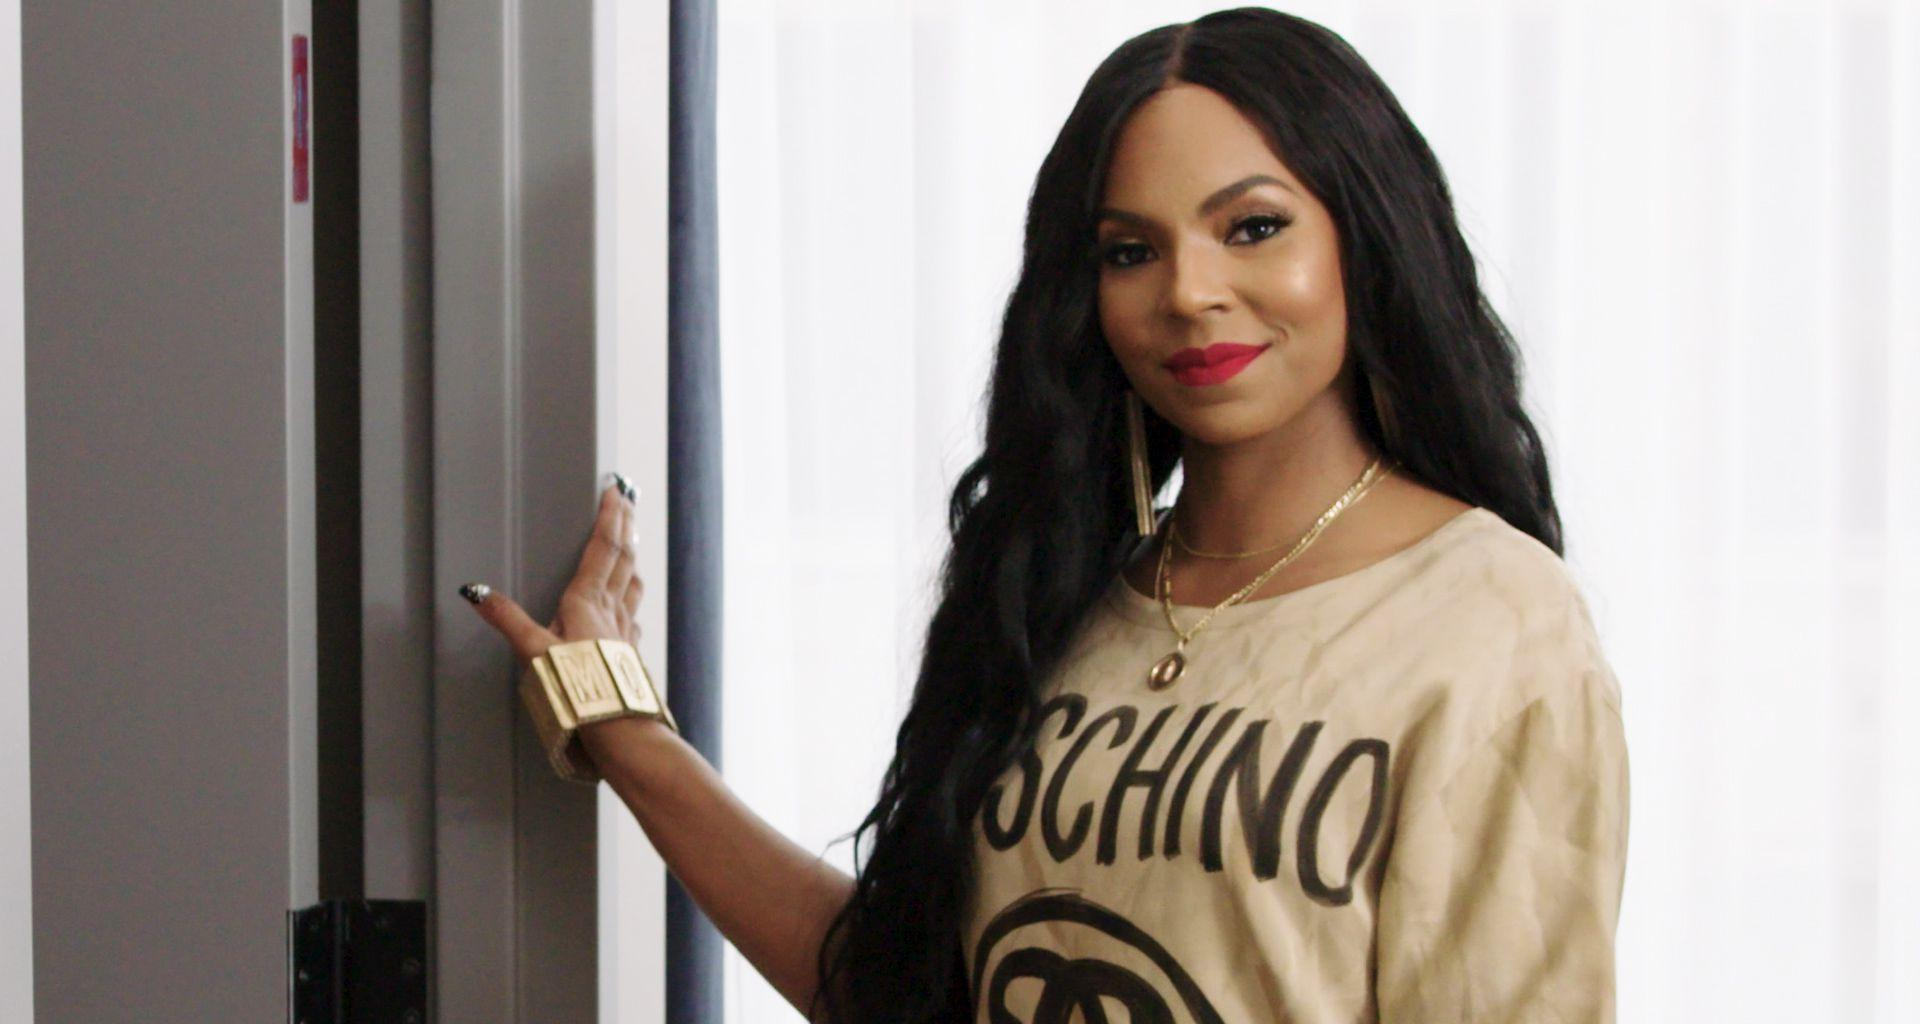 Ashanti Is Working On A New Video And Her Fans Say She Sounds Like J.Lo - Check Out The Clip